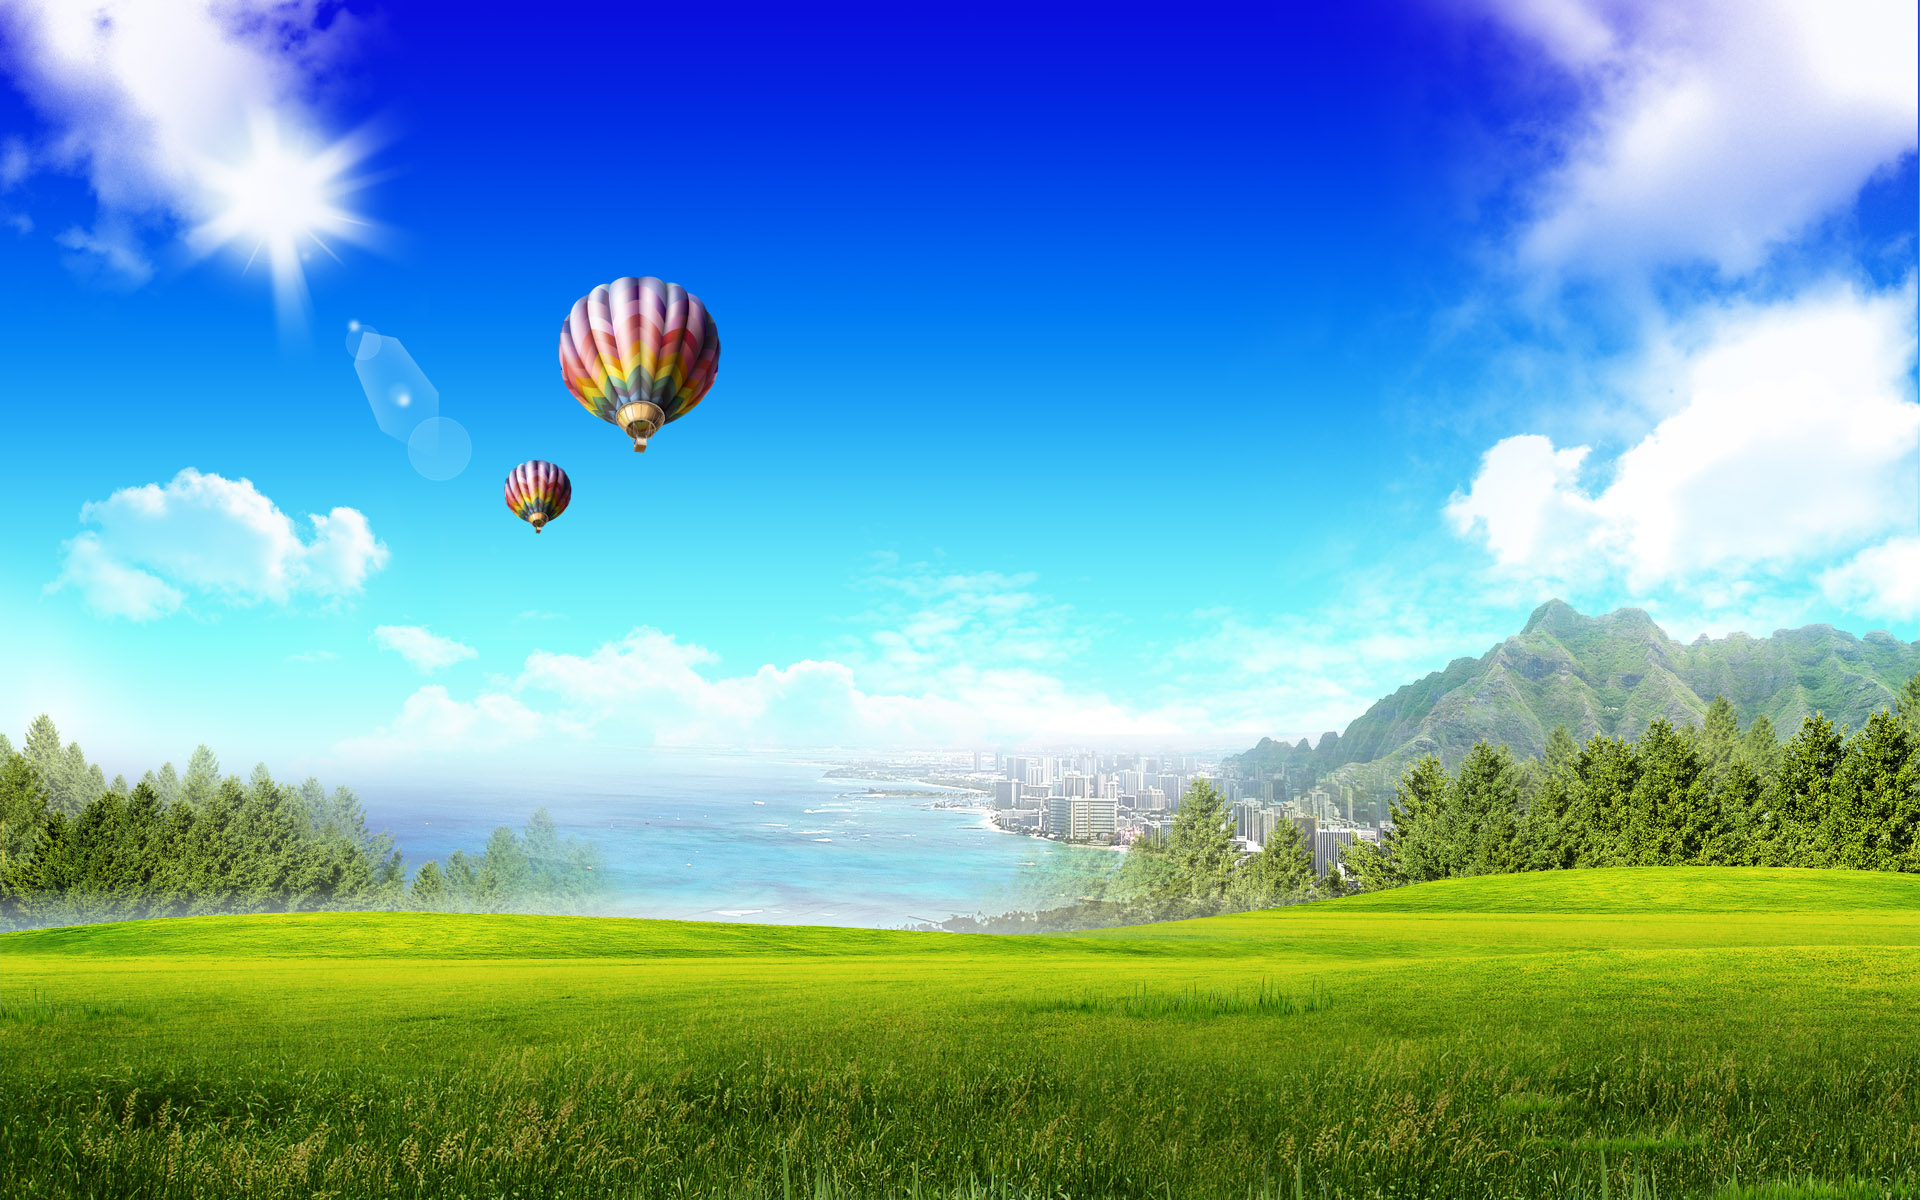 Free Scenery Wallpaper – Includes the City at Beach Fantasy, An